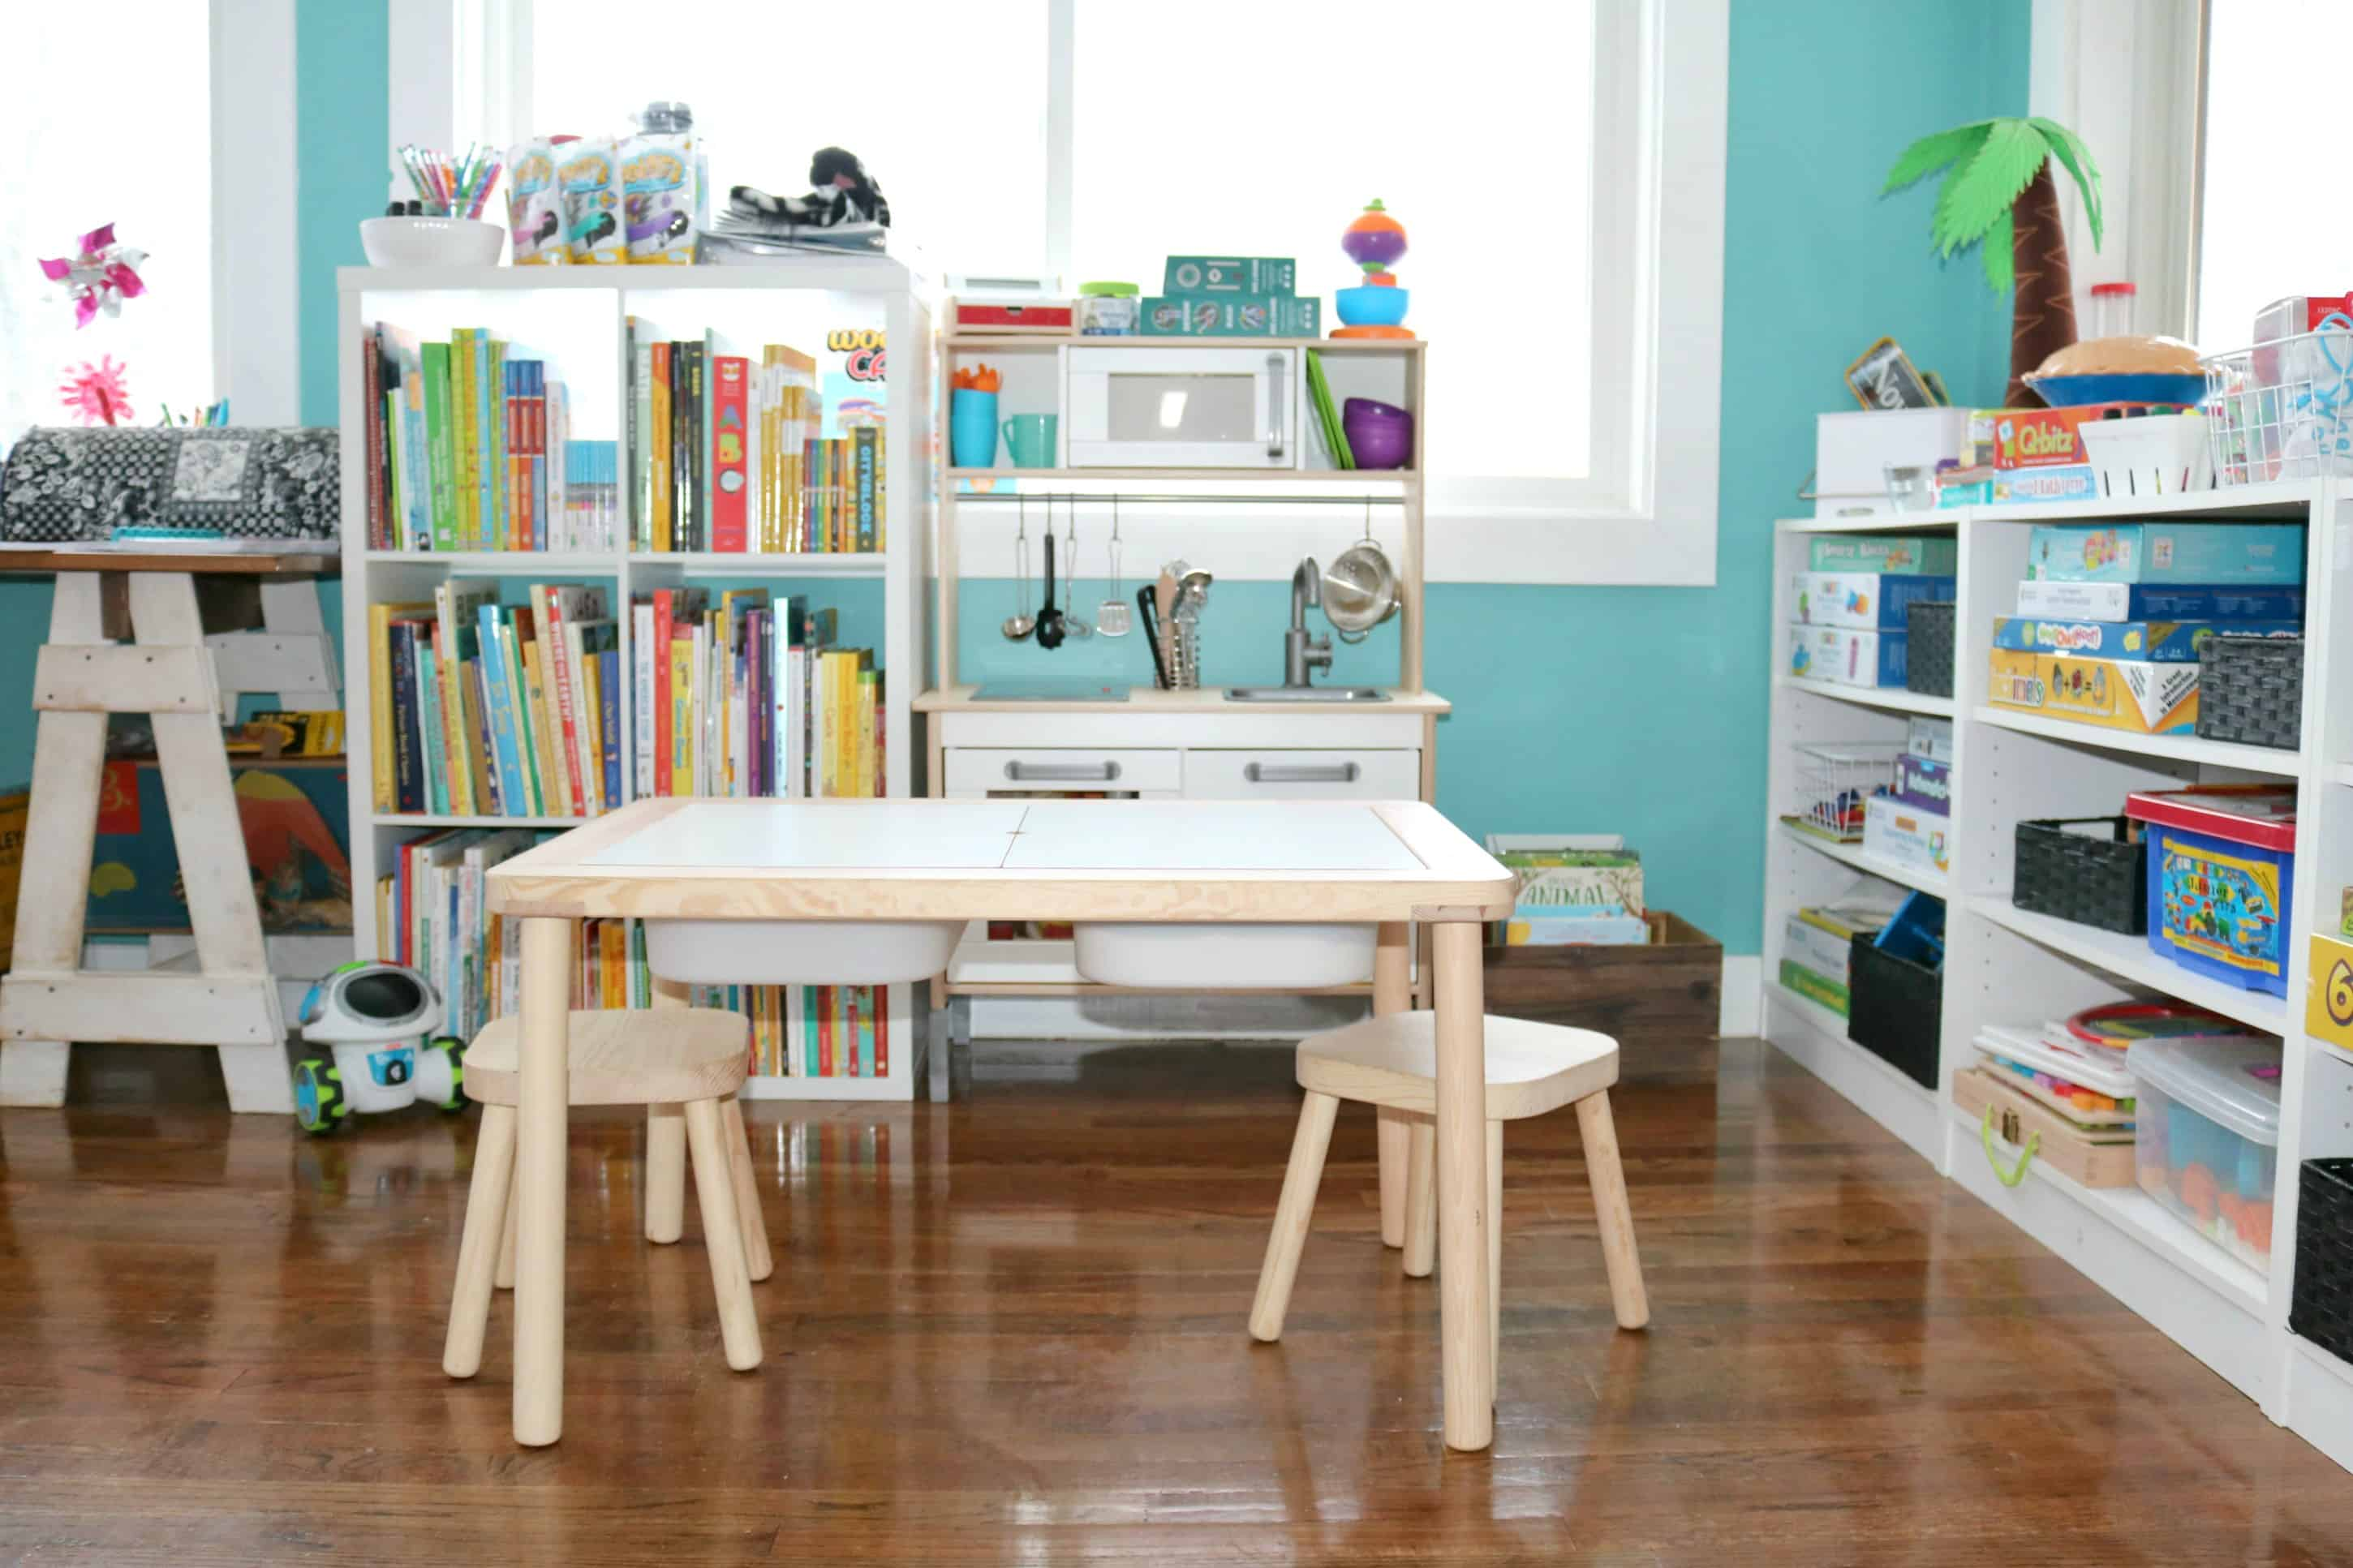 Our Awesome Preschool Homeschool Space for the New Year